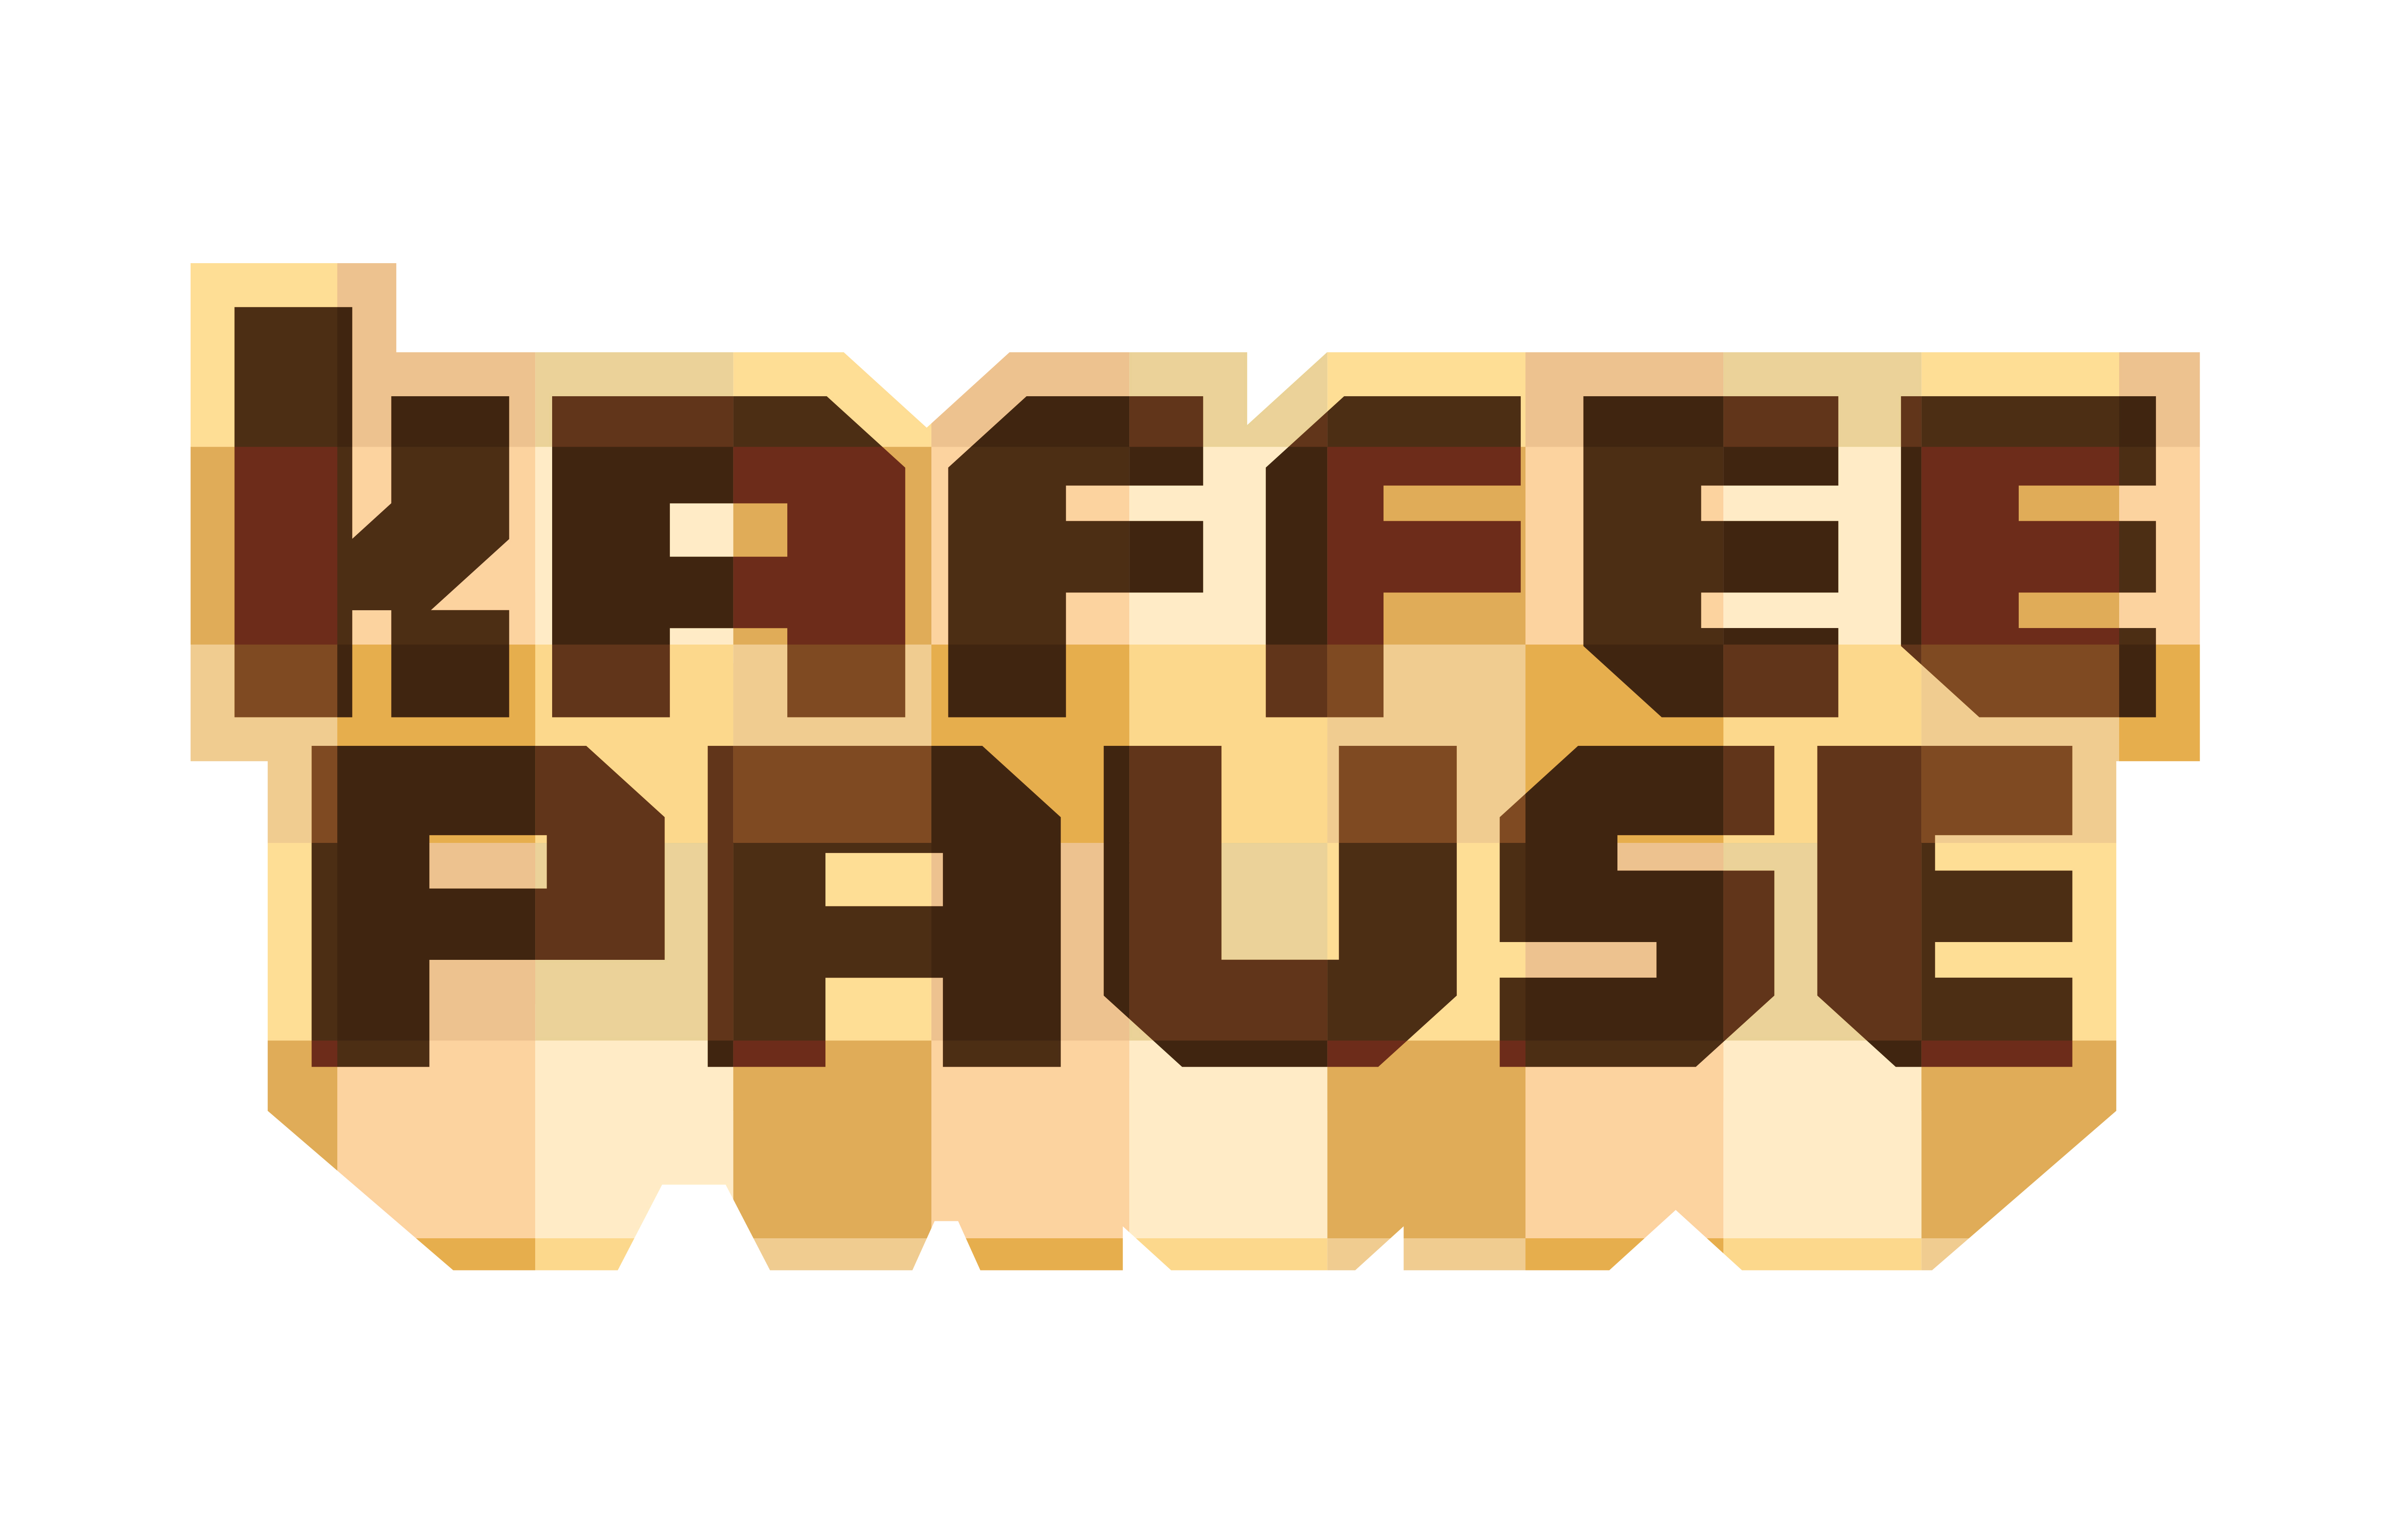 Kaffepause by Steamshots